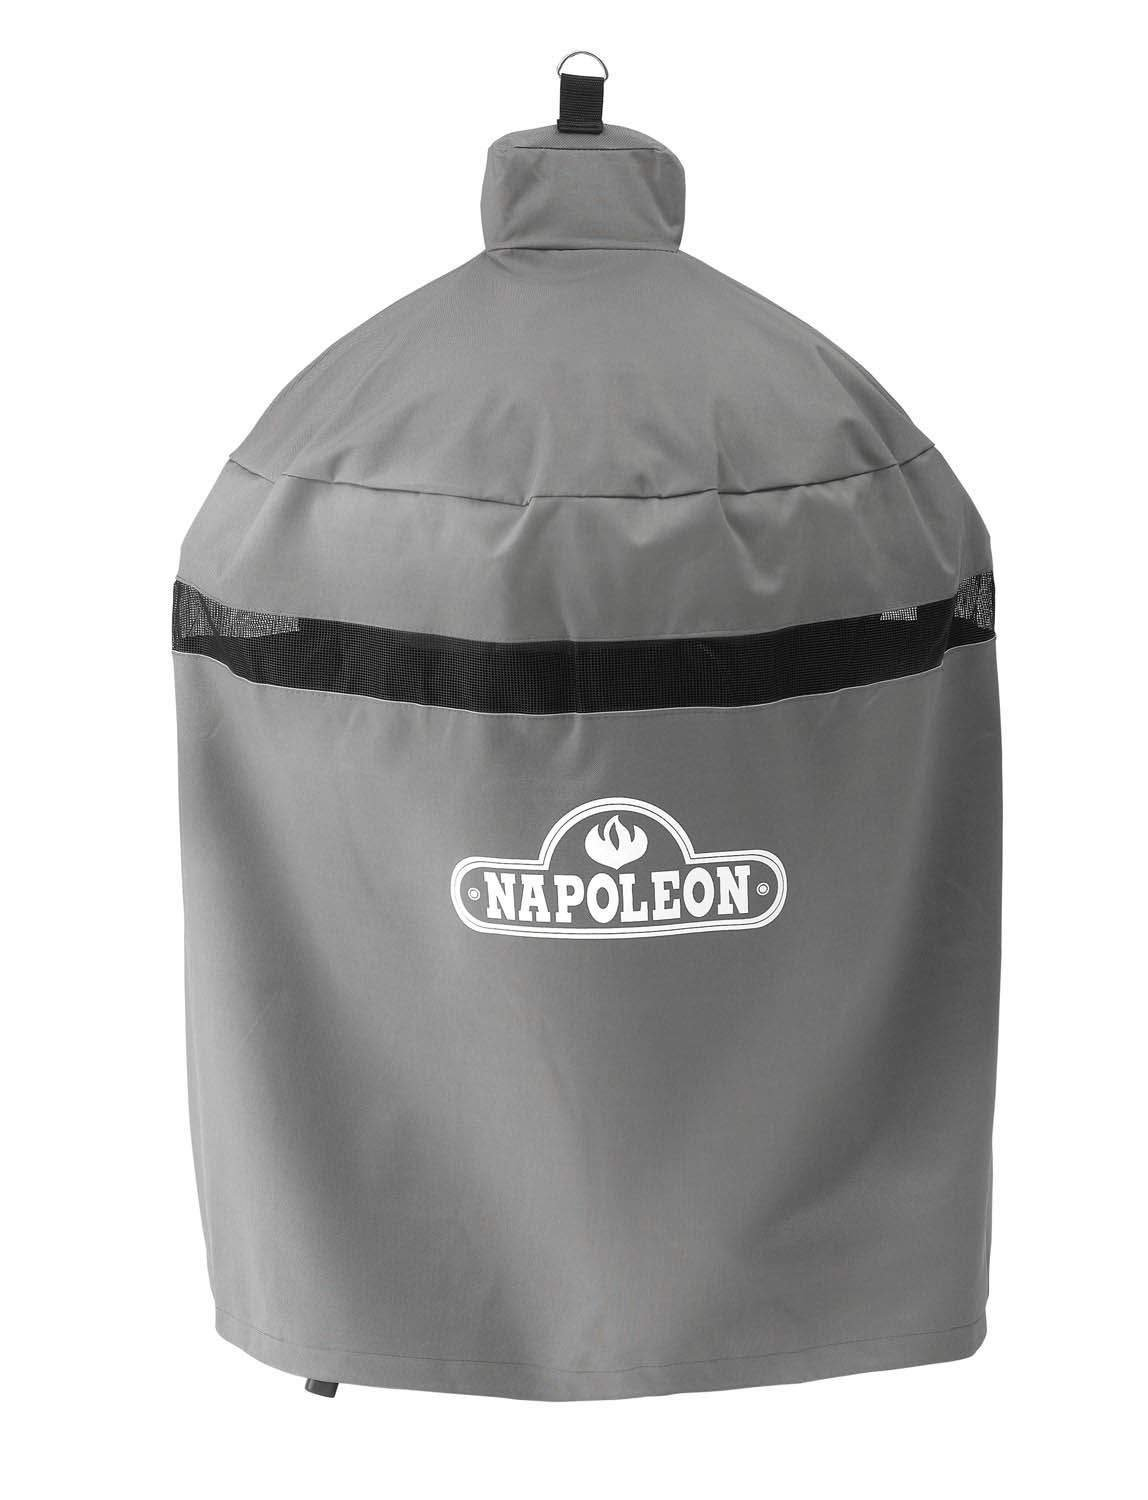 Napoleon 68910 Charcoal Kettle Grill Cover for Leg Models